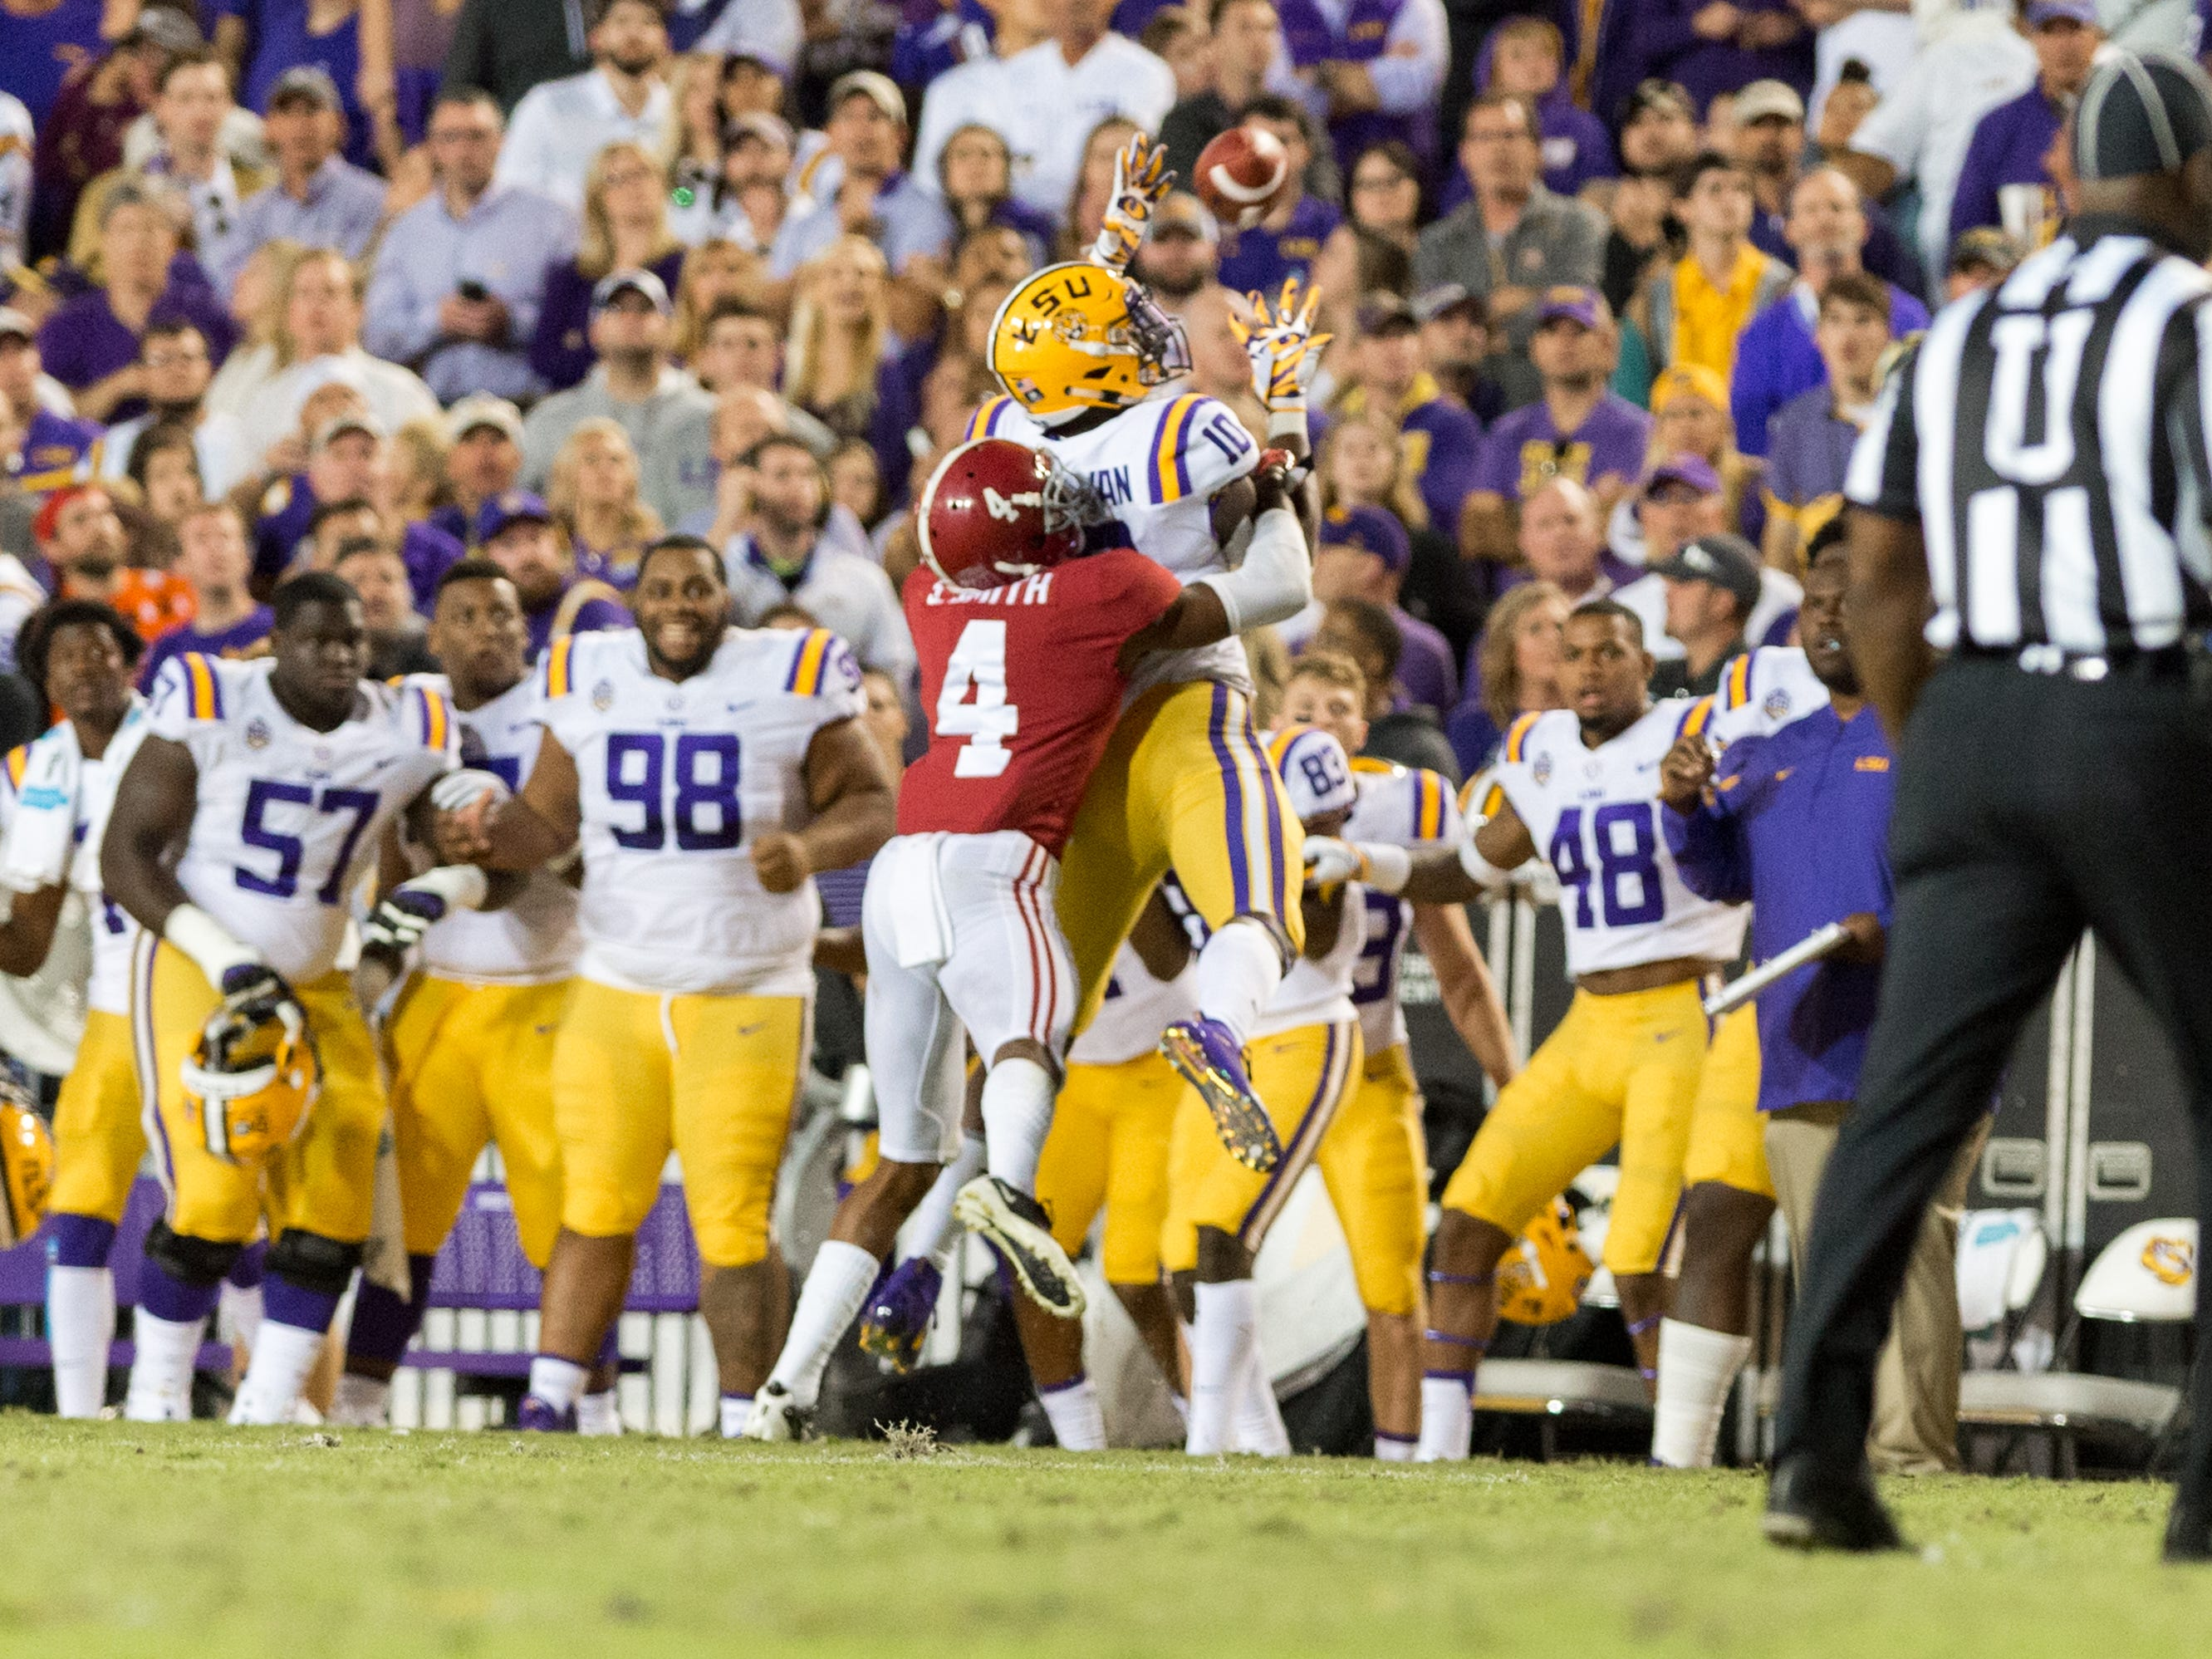 Tigers receiver Stephen Sullivan catches a pass with tight coverage from Saivian Smith as the No. 4-ranked LSU Tigers take on the No. 1  Alabama Crimson Tide in Tiger Stadium Saturday, Nov. 3, 2018.